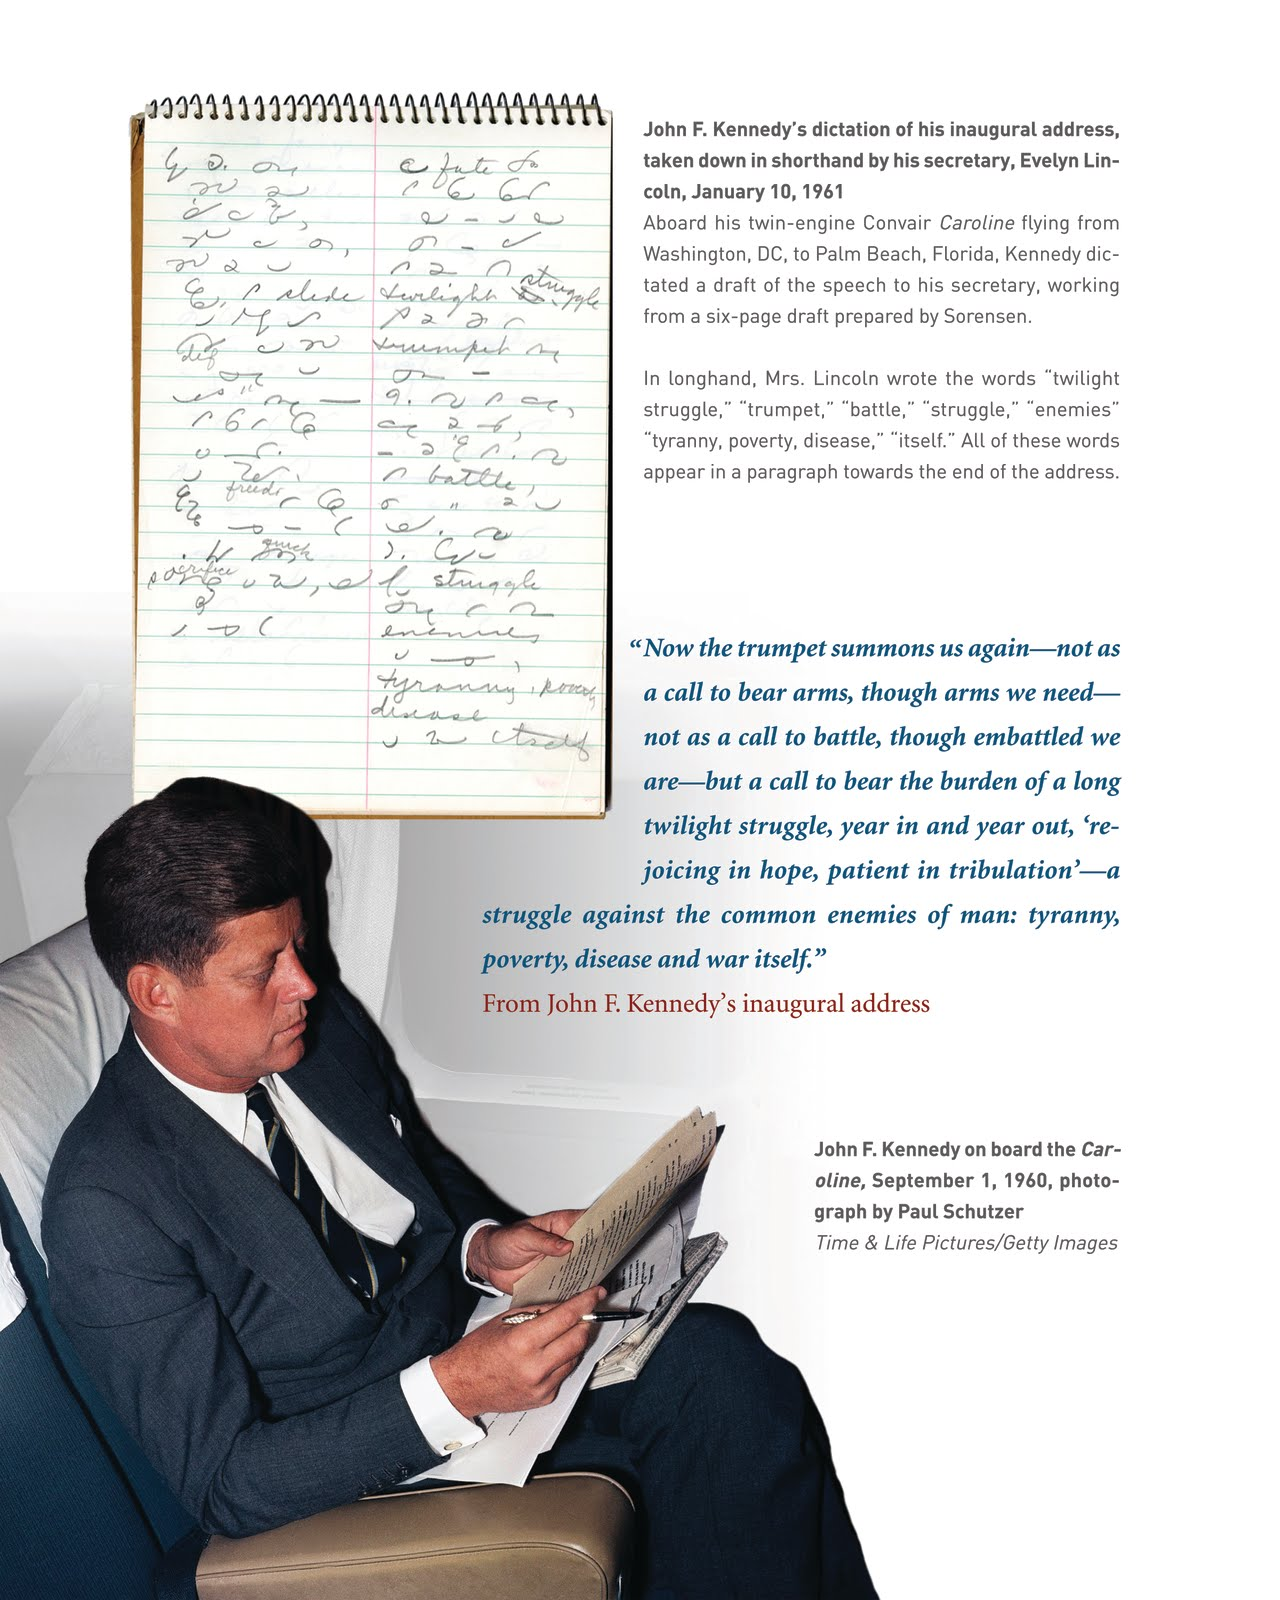 Kennedydetail History Of John F Kennedy S Inaugural Address